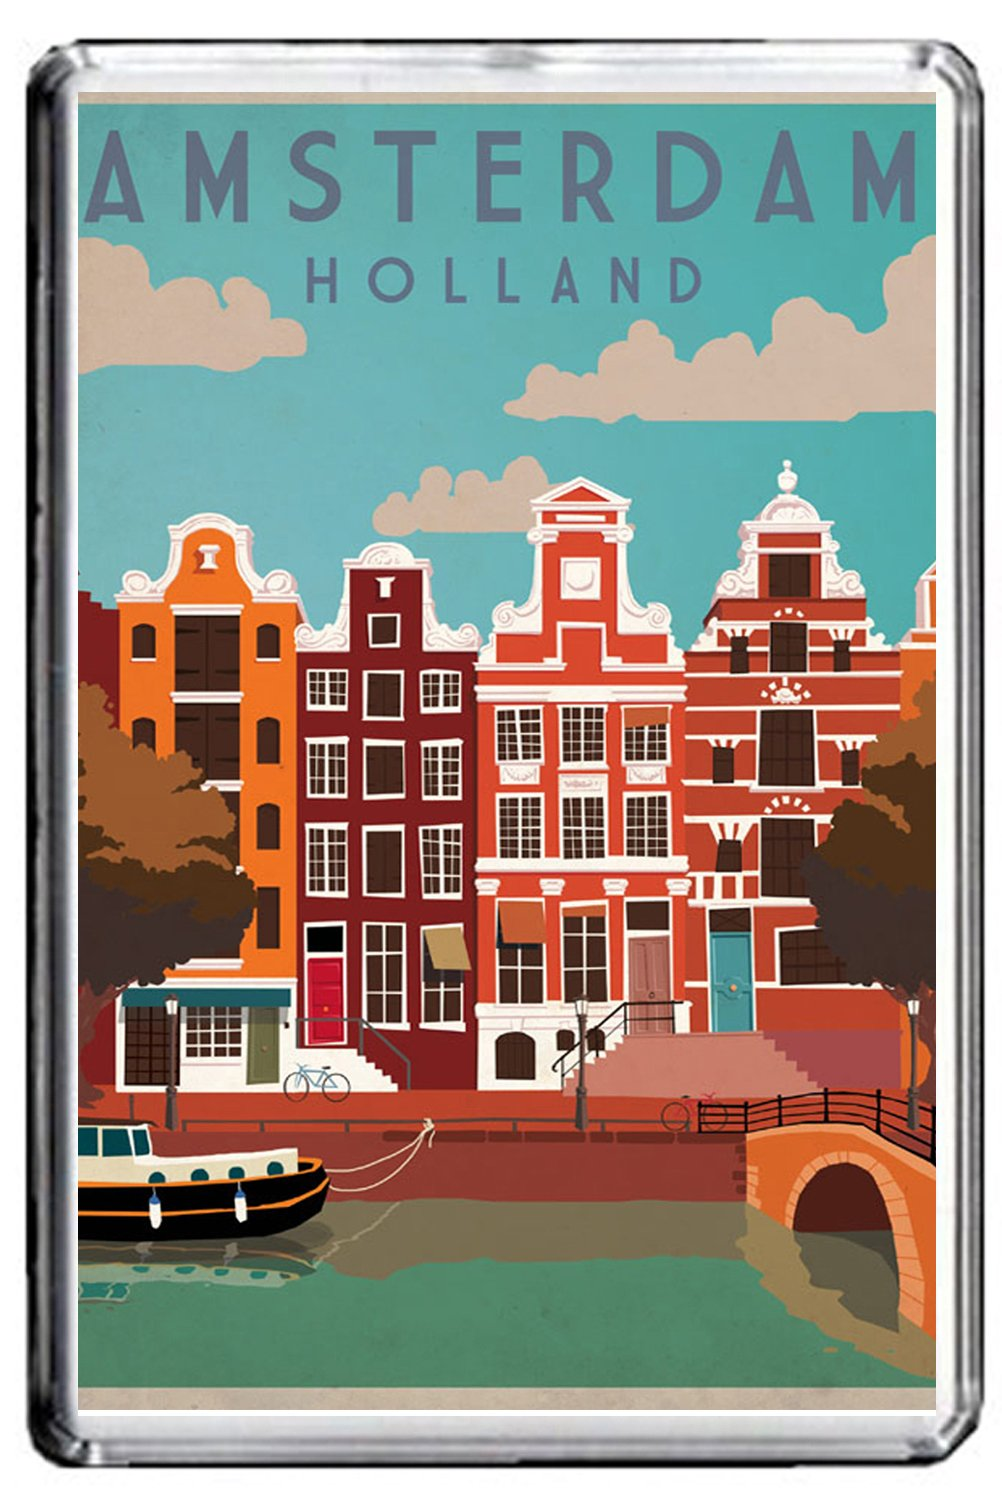 CFL B003 AMSTERDAM FRIDGE MAGNET NETHERLANDS VINTAGE TRAVEL PHOTO MAGNETICA CALAMITA FRIGO